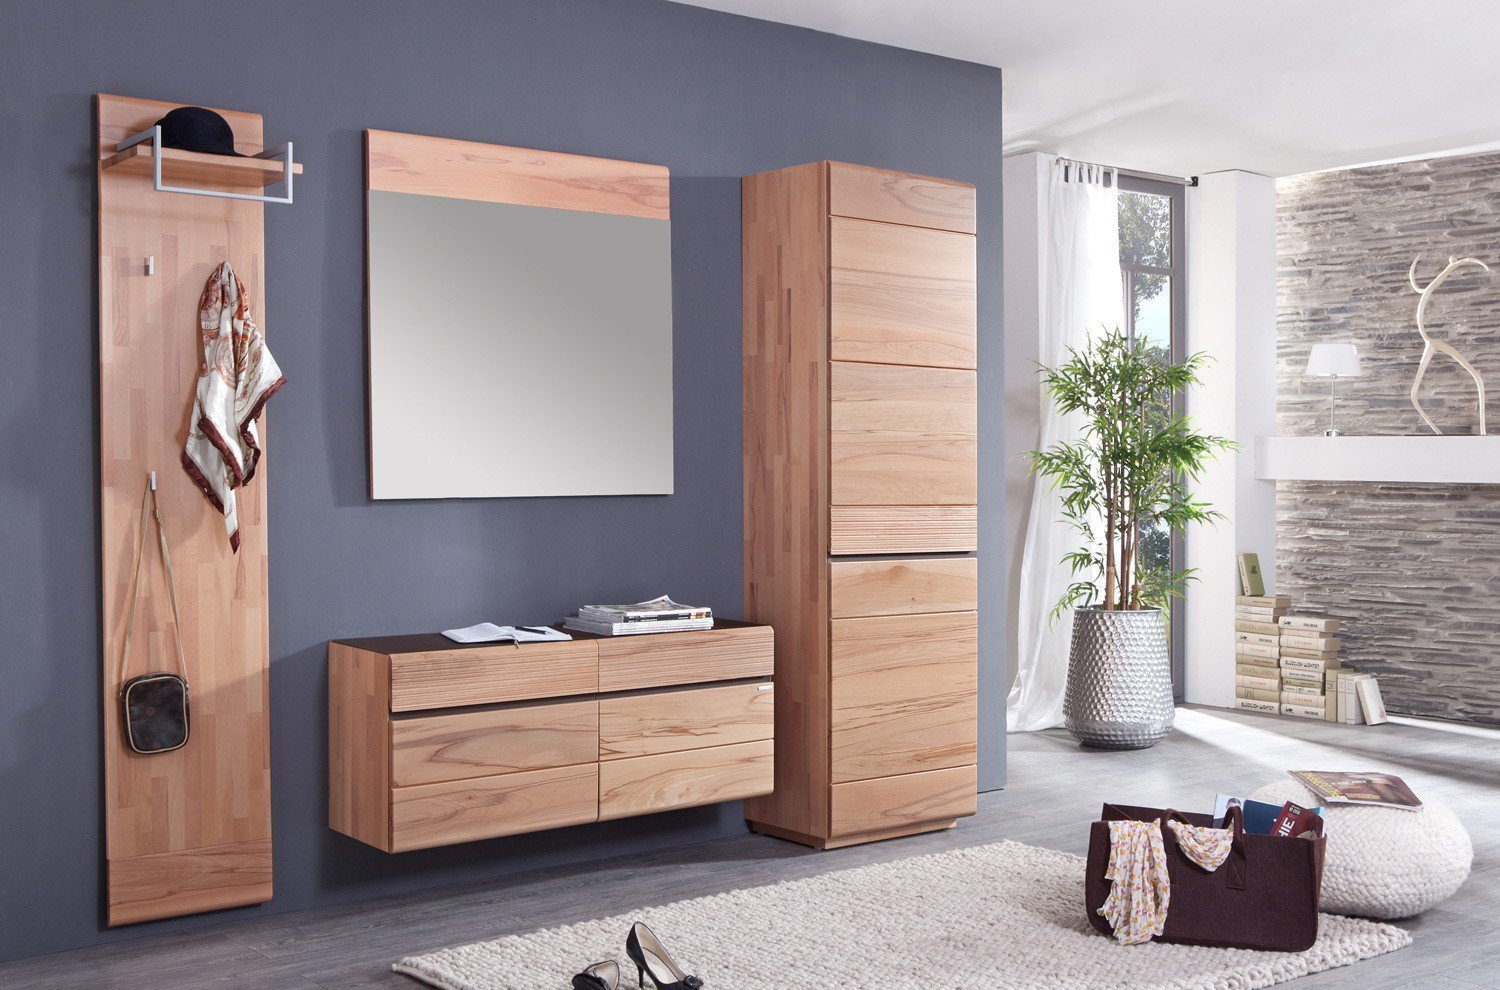 bienenm hle garderobe cosima kernbuche massiv m bel letz ihr online shop. Black Bedroom Furniture Sets. Home Design Ideas